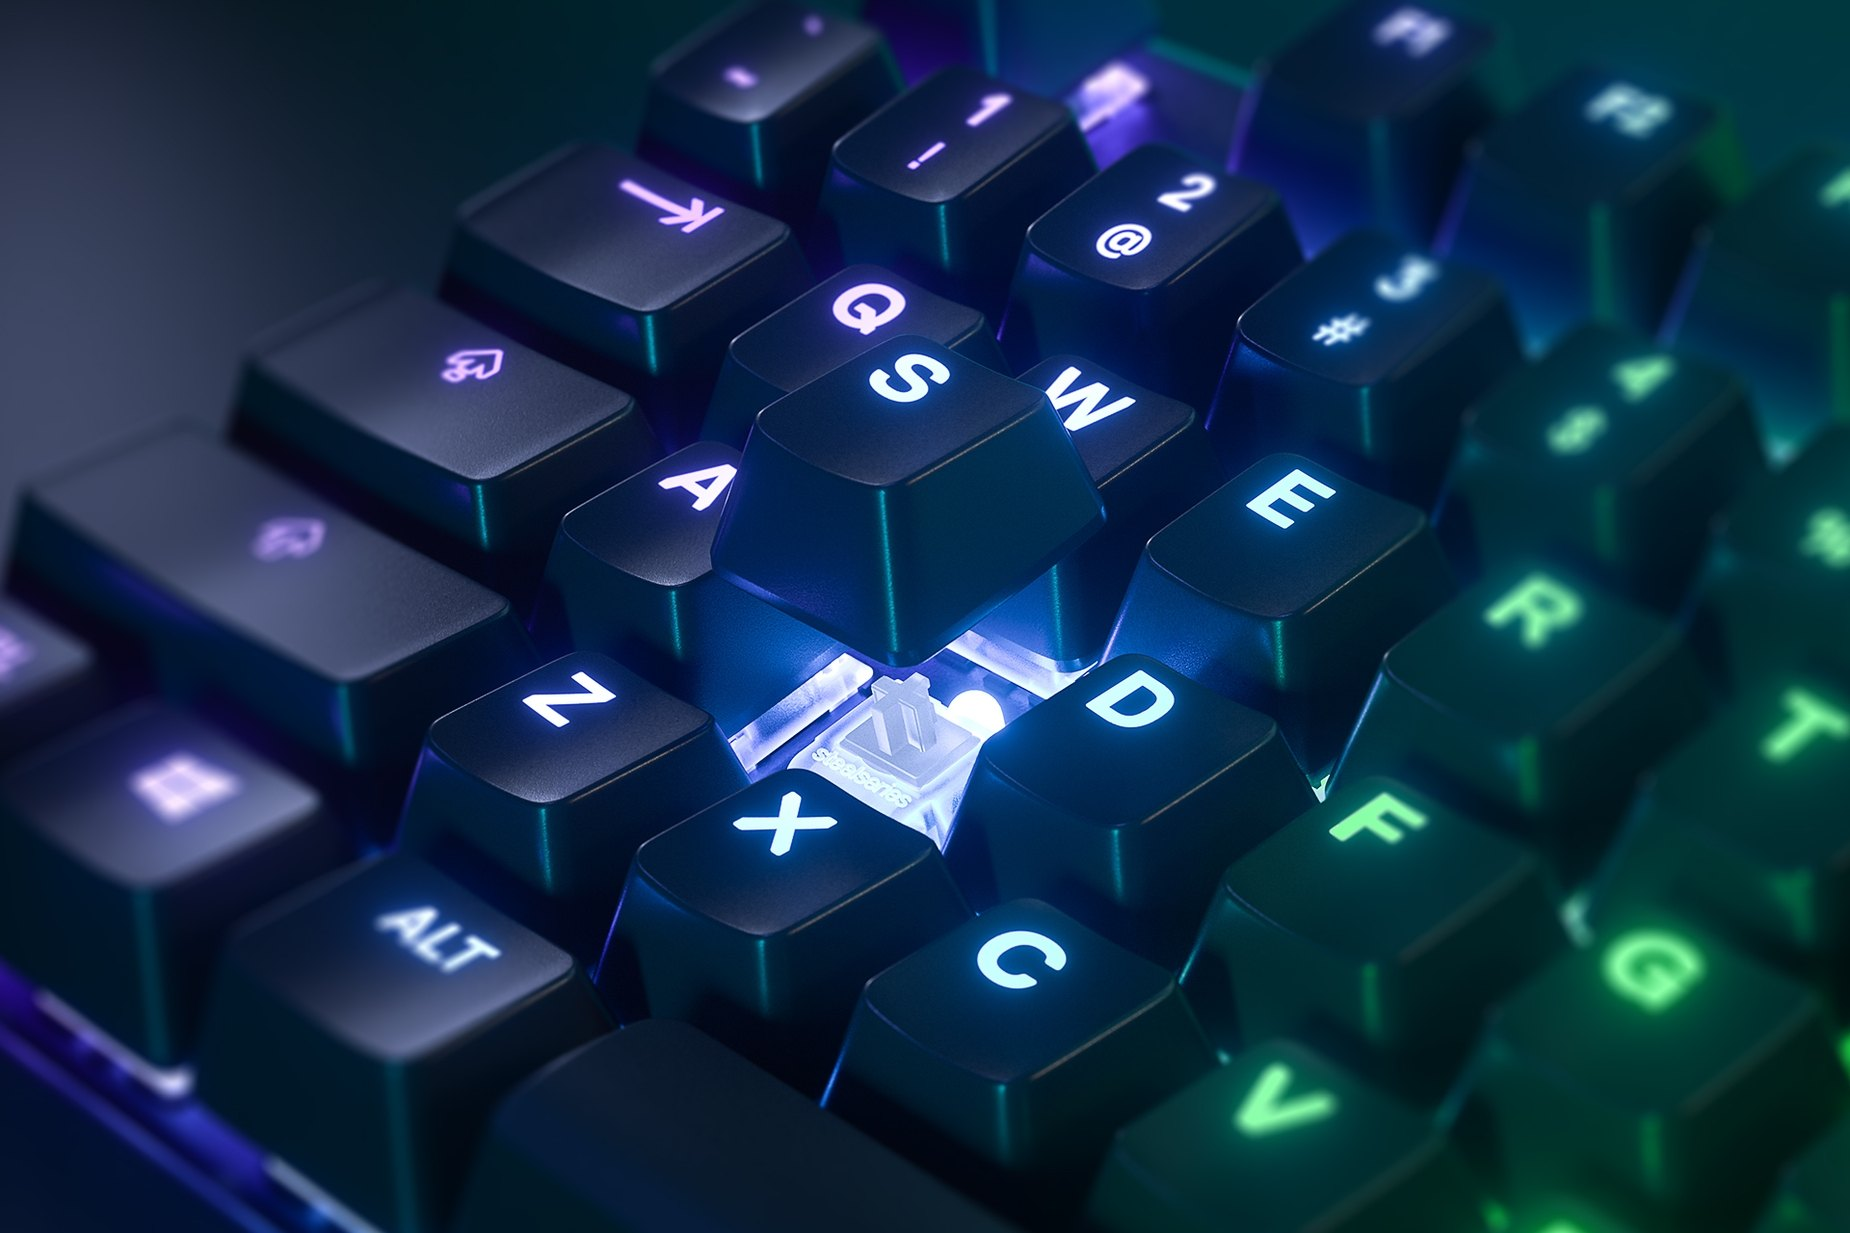 Zoomed in view of a single key on the Korean - APEX PRO gaming keyboard, the key is raised up to show the SteelSeries OmniPoint Adjustable Mechanical Switch underneath